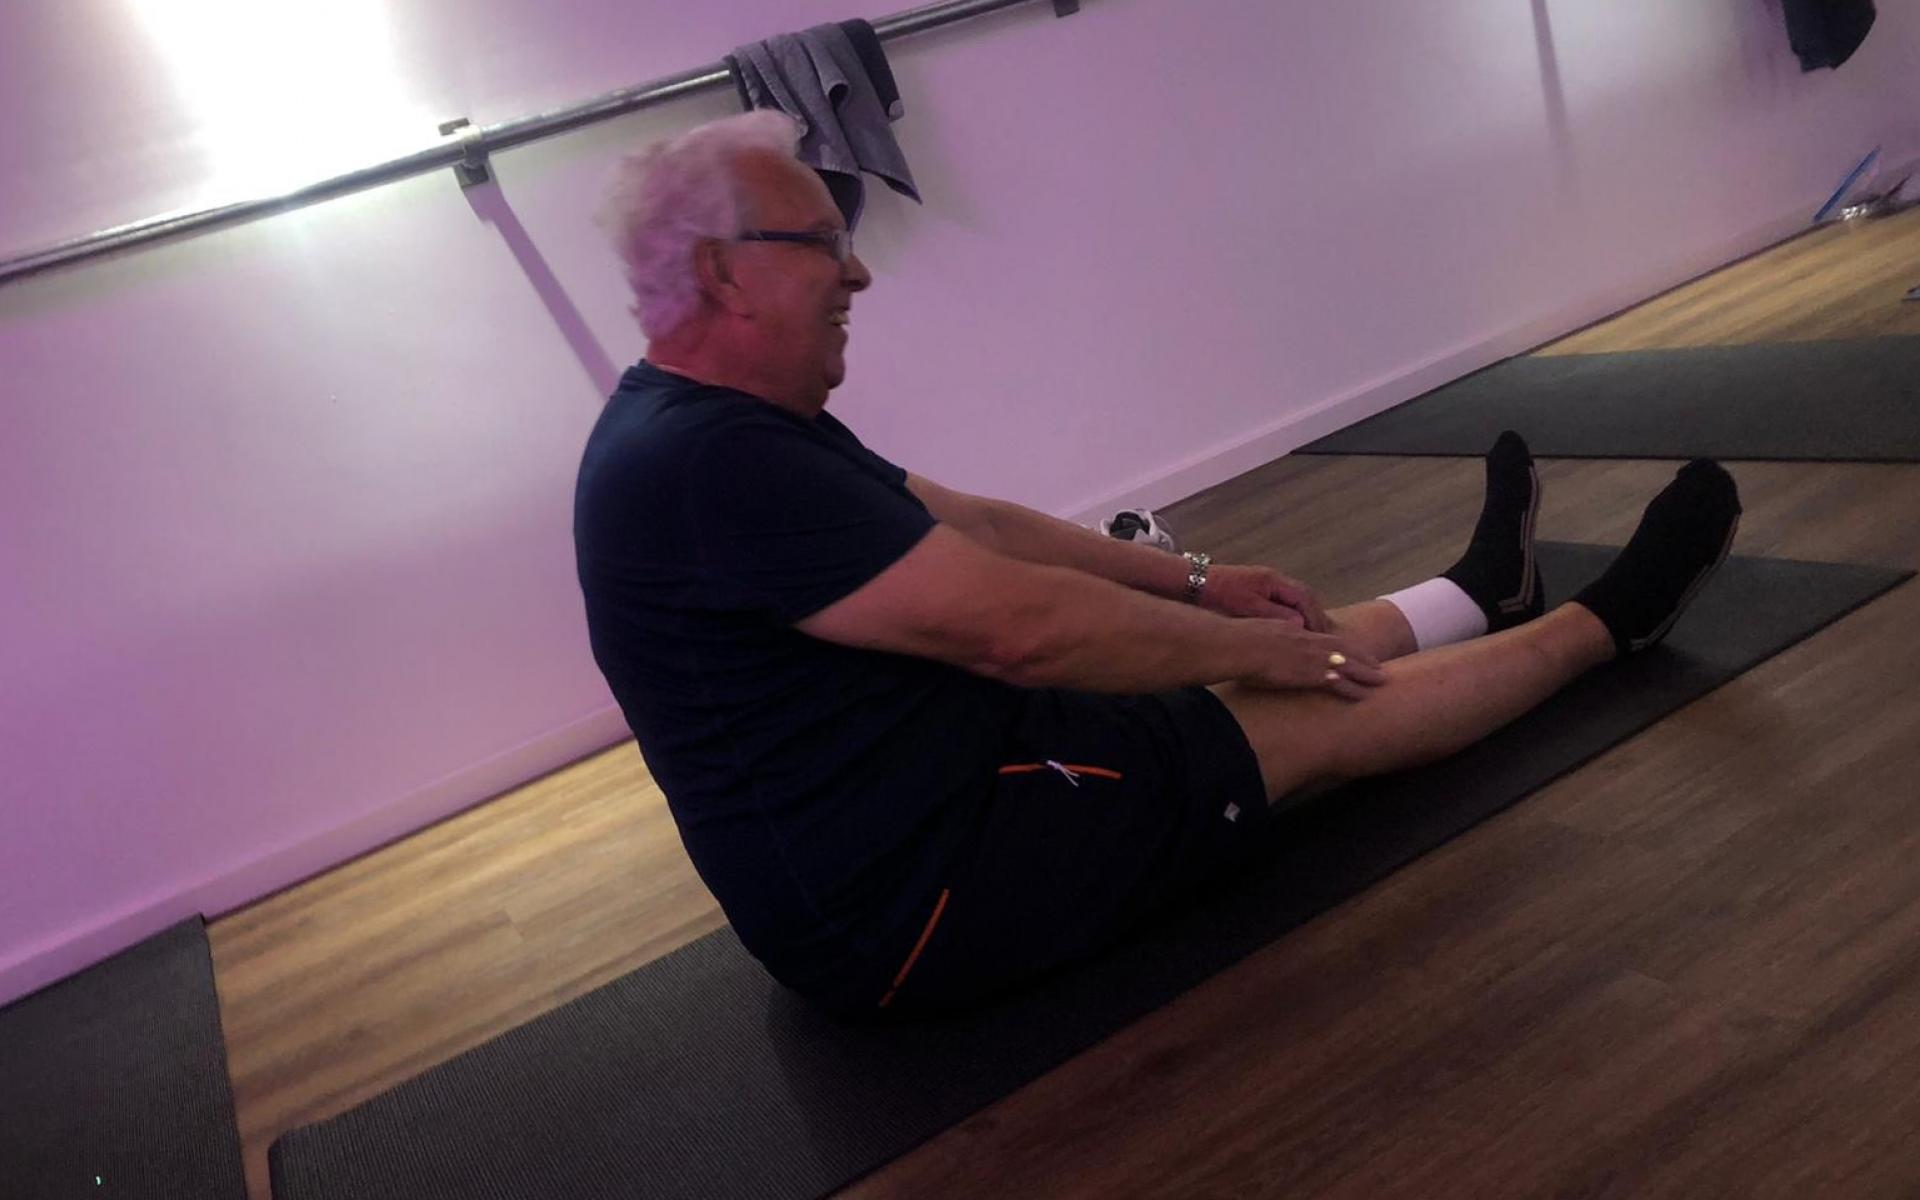 A participant enjoys the Active Recovery session